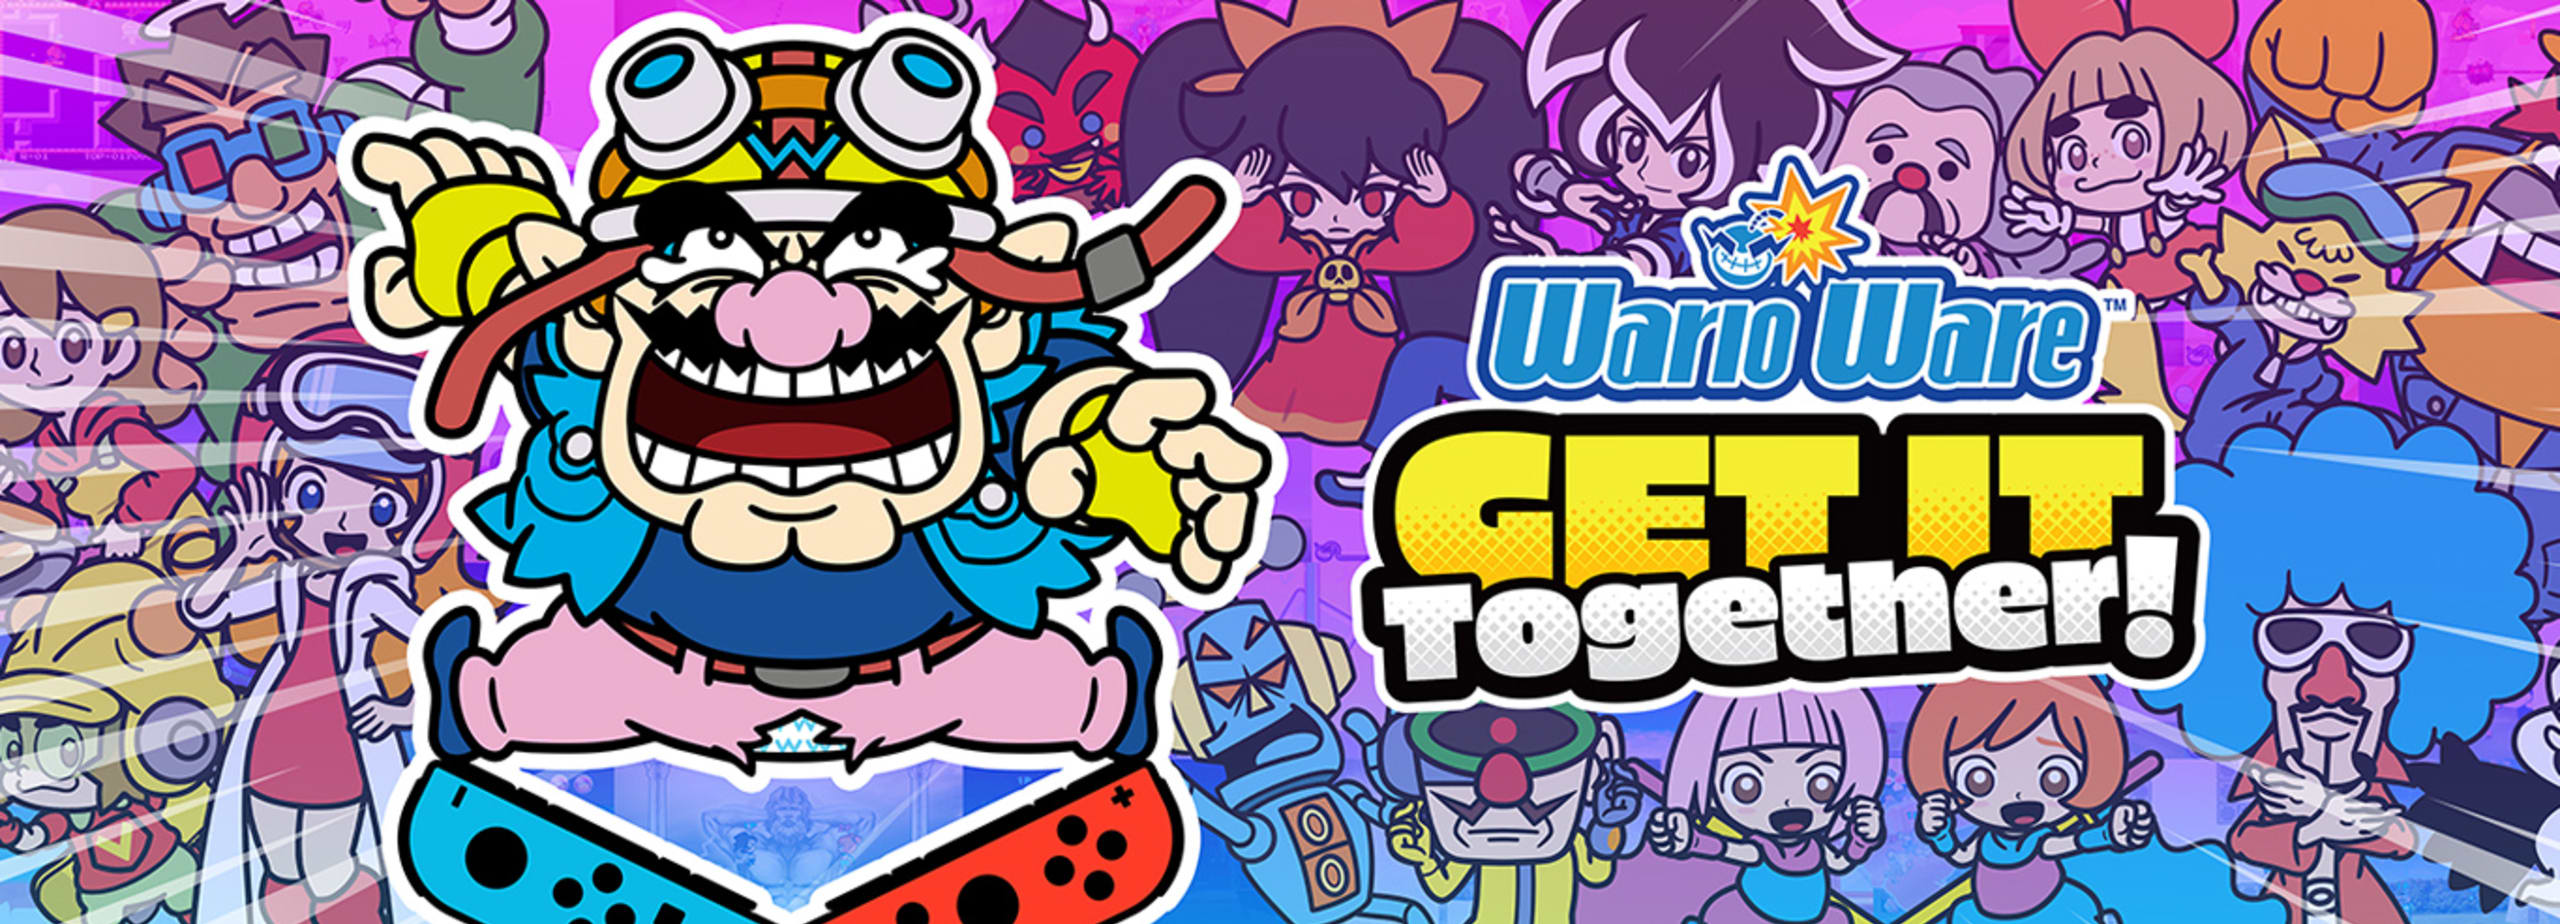 WarioWare: Get it Together! - Available now